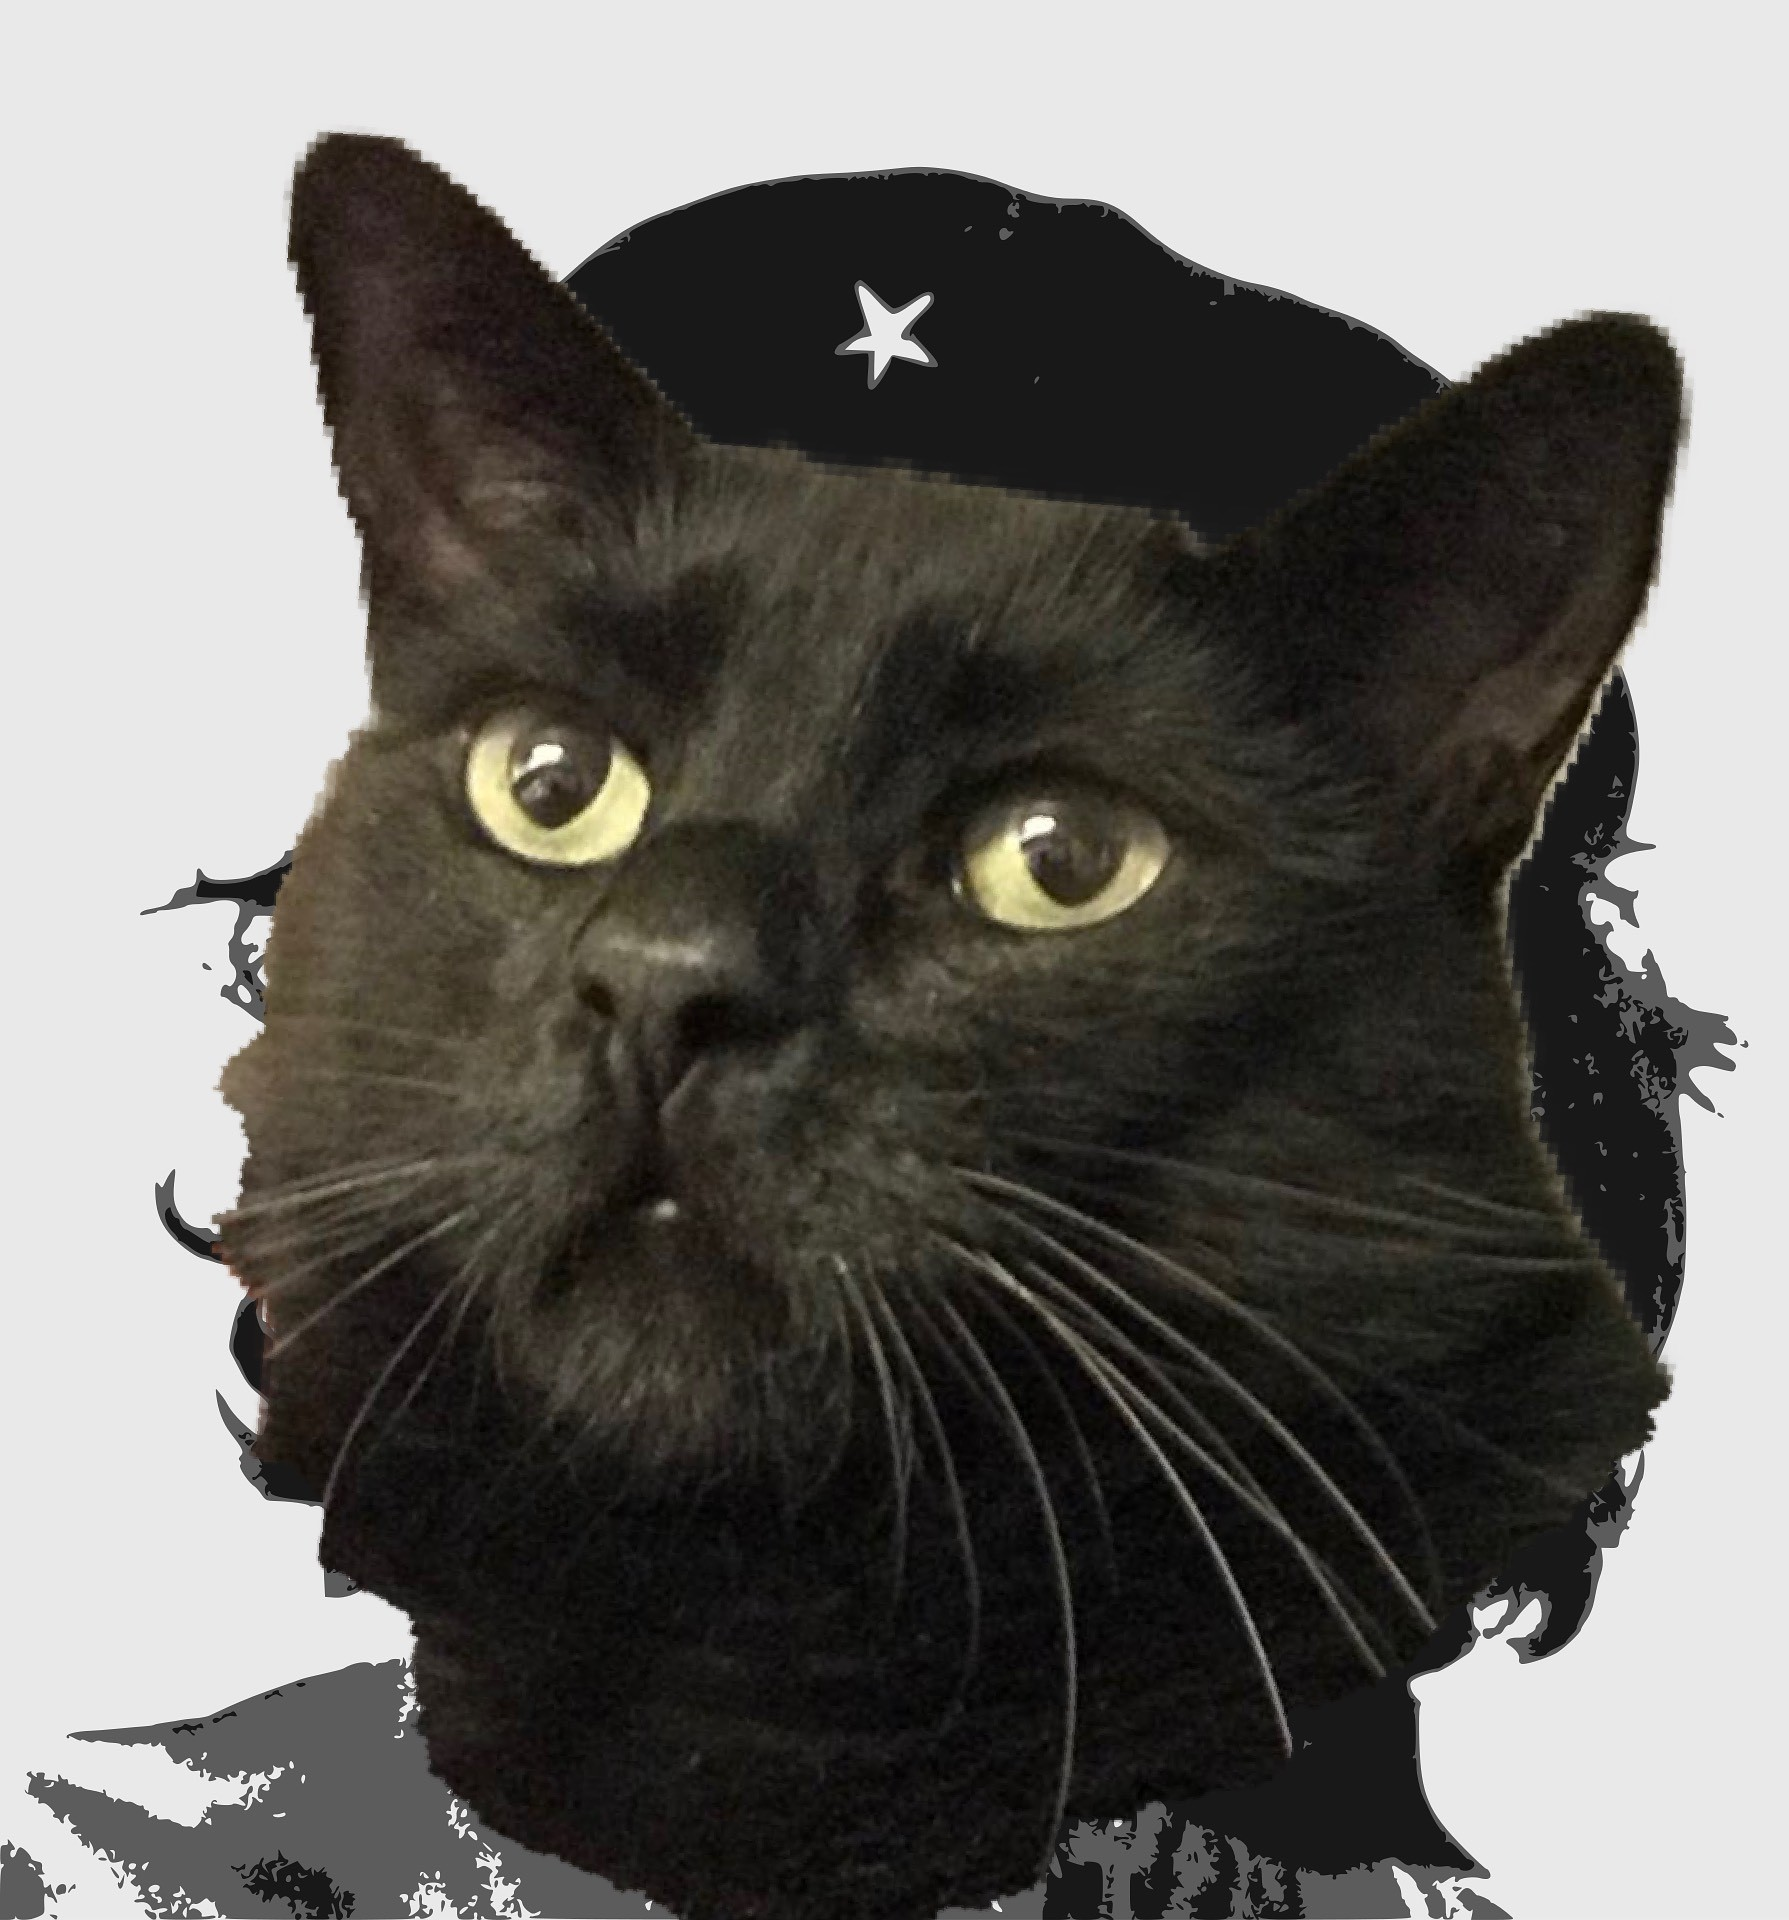 Tibbs as Che